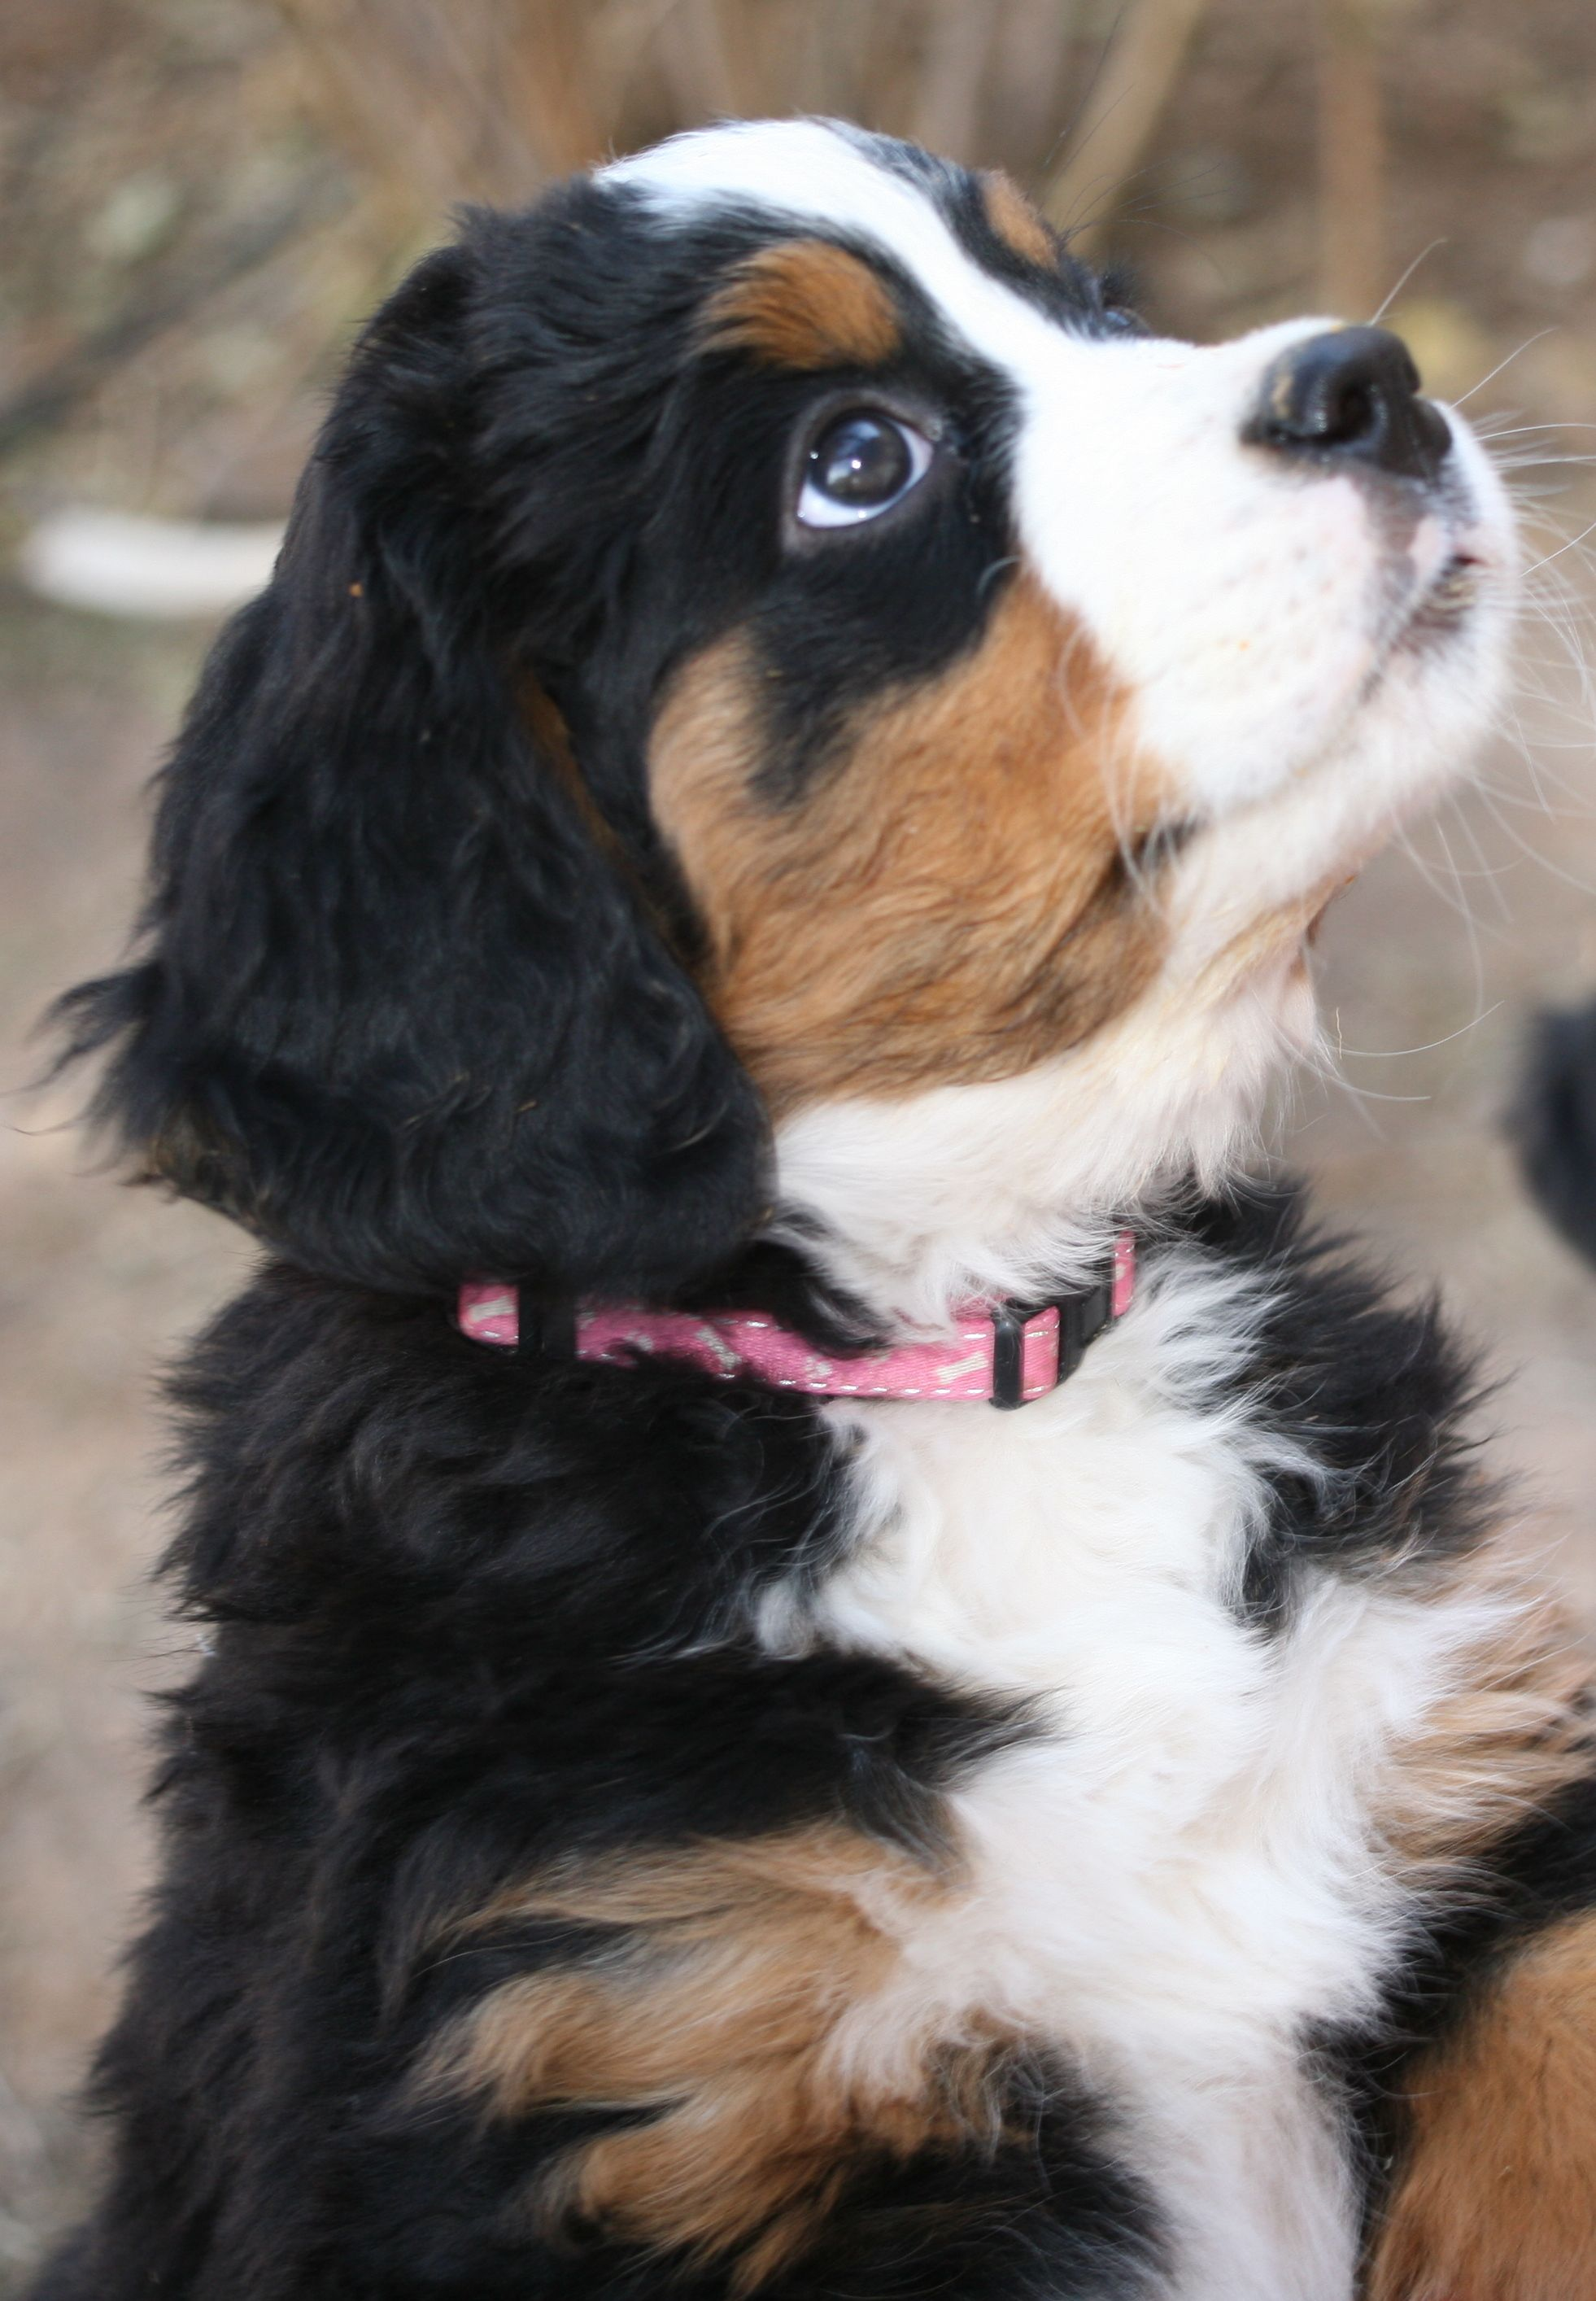 This cute little Bernese Mountain Dog puppy belongs to my friend Megan. How cute is she?! More puppy pictures can be found on her board at @If It Falls On The Floor.